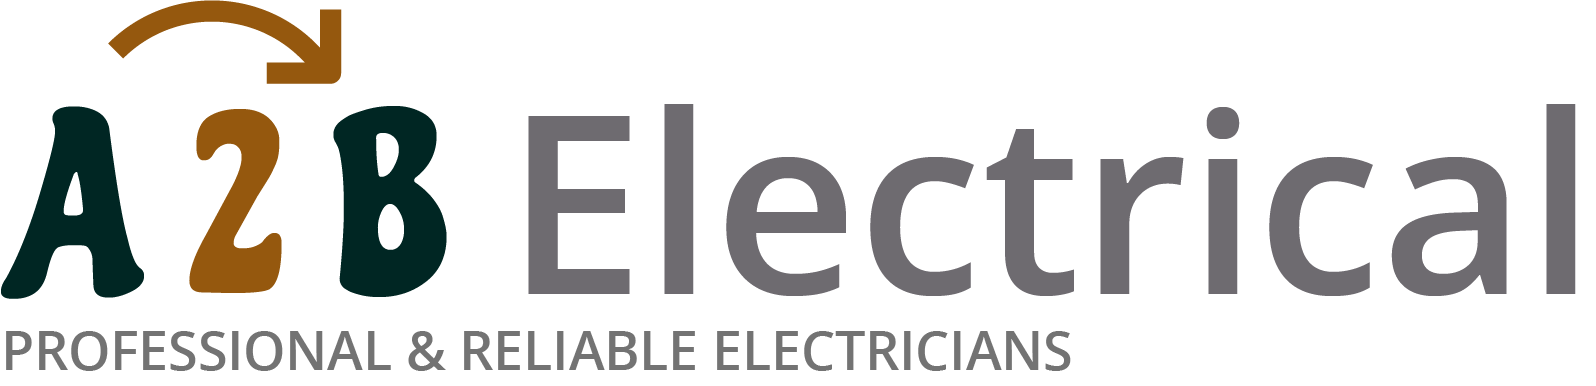 If you have electrical wiring problems in Harold Wood, we can provide an electrician to have a look for you.